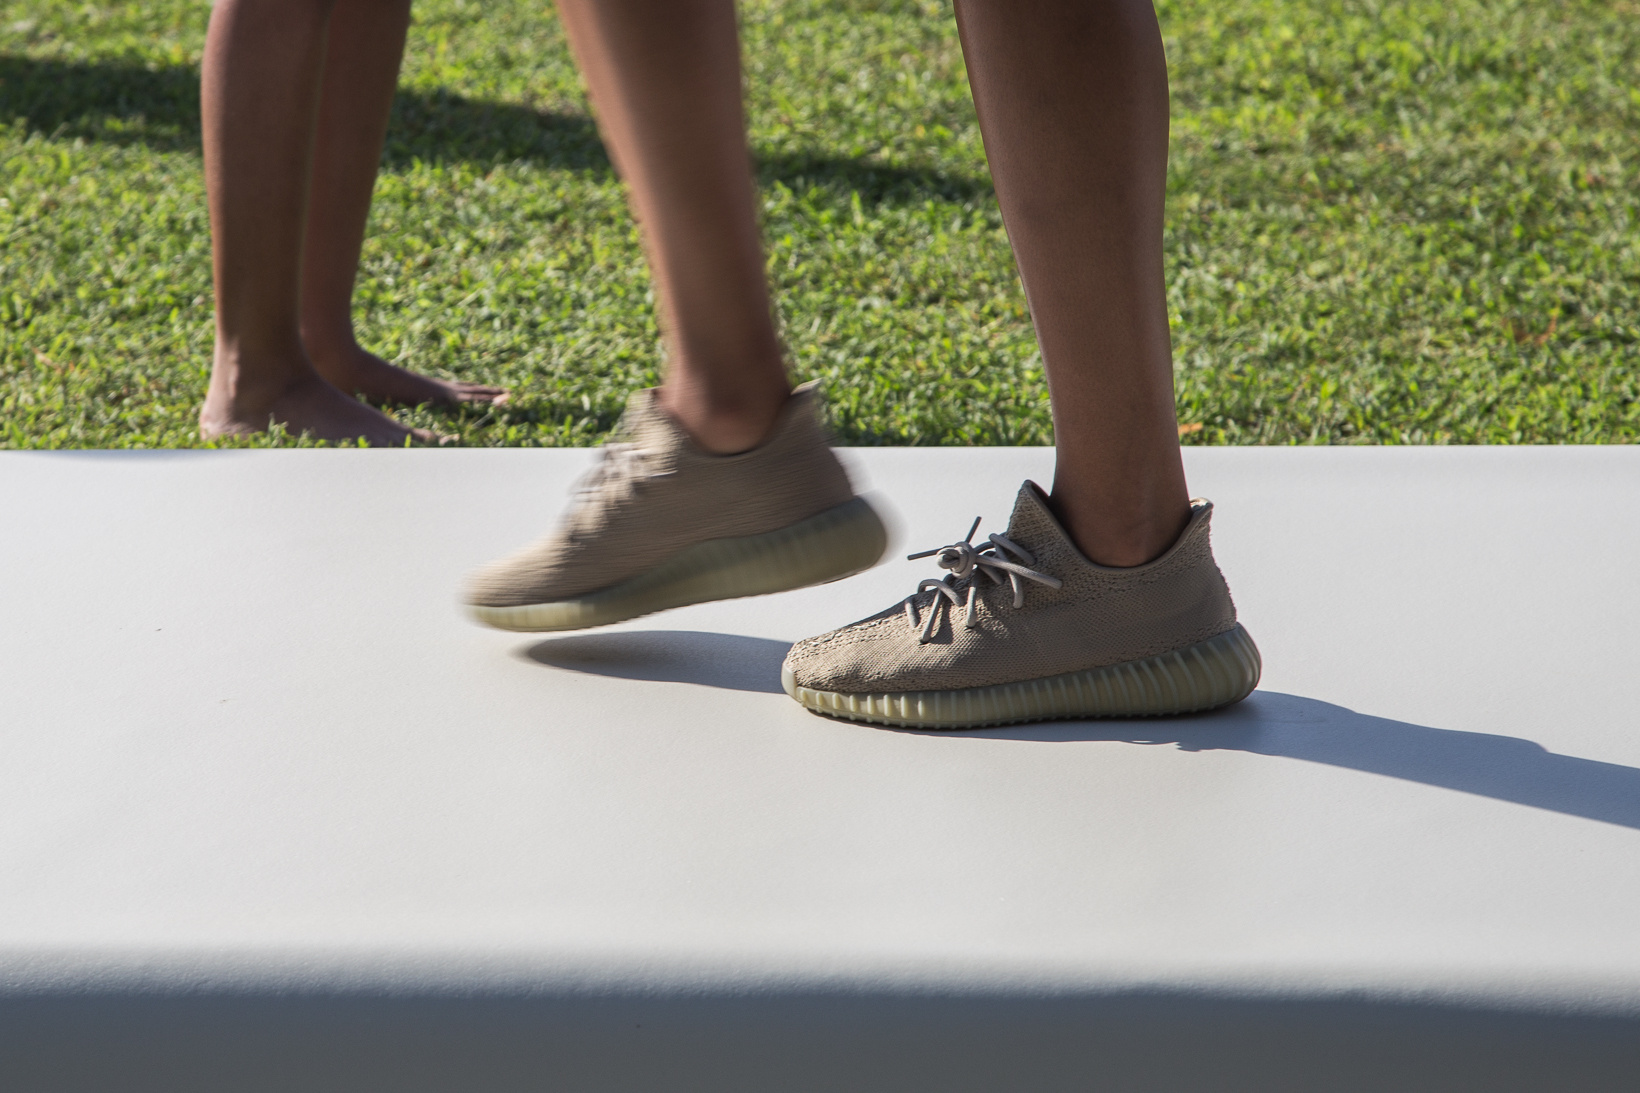 75% Off Yeezy boost 350 v2